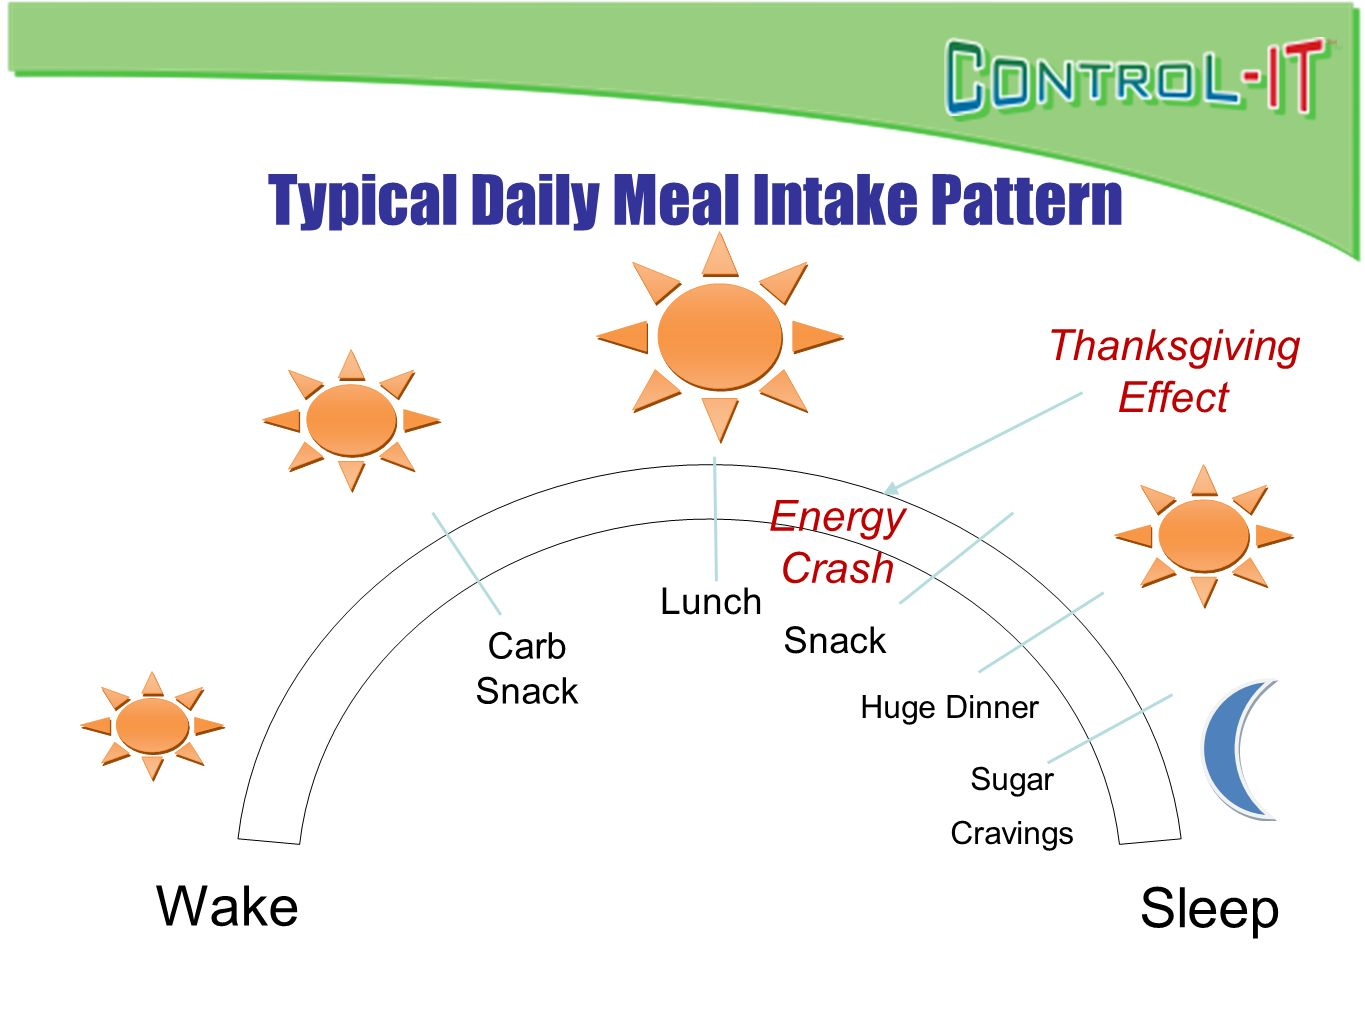 Typical Daily Meal Intake Pattern